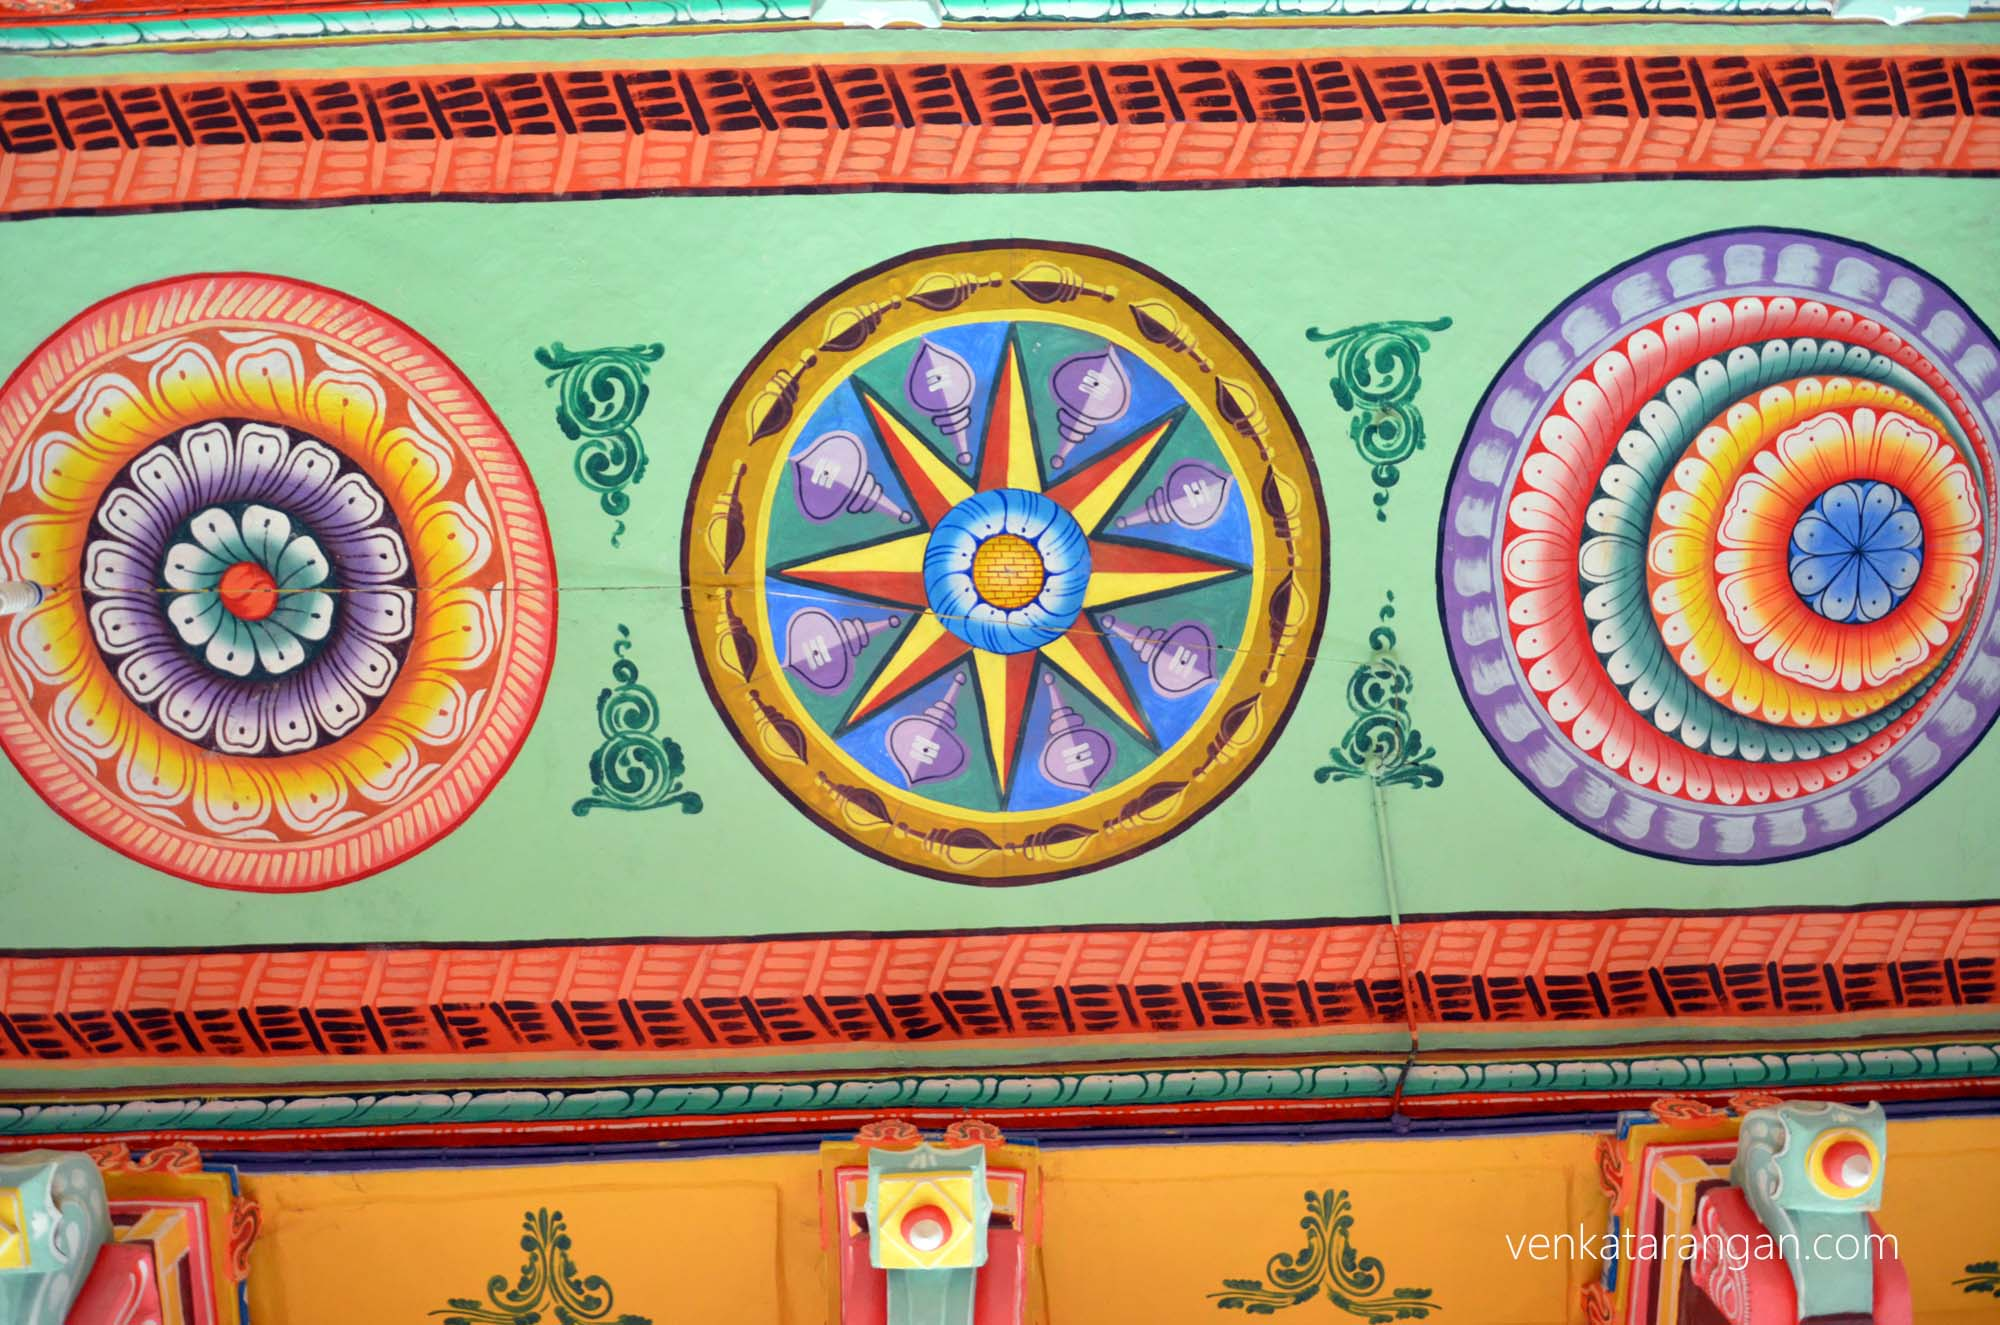 Even the ceilings are beautifully painted - Rameswaram temple corridors